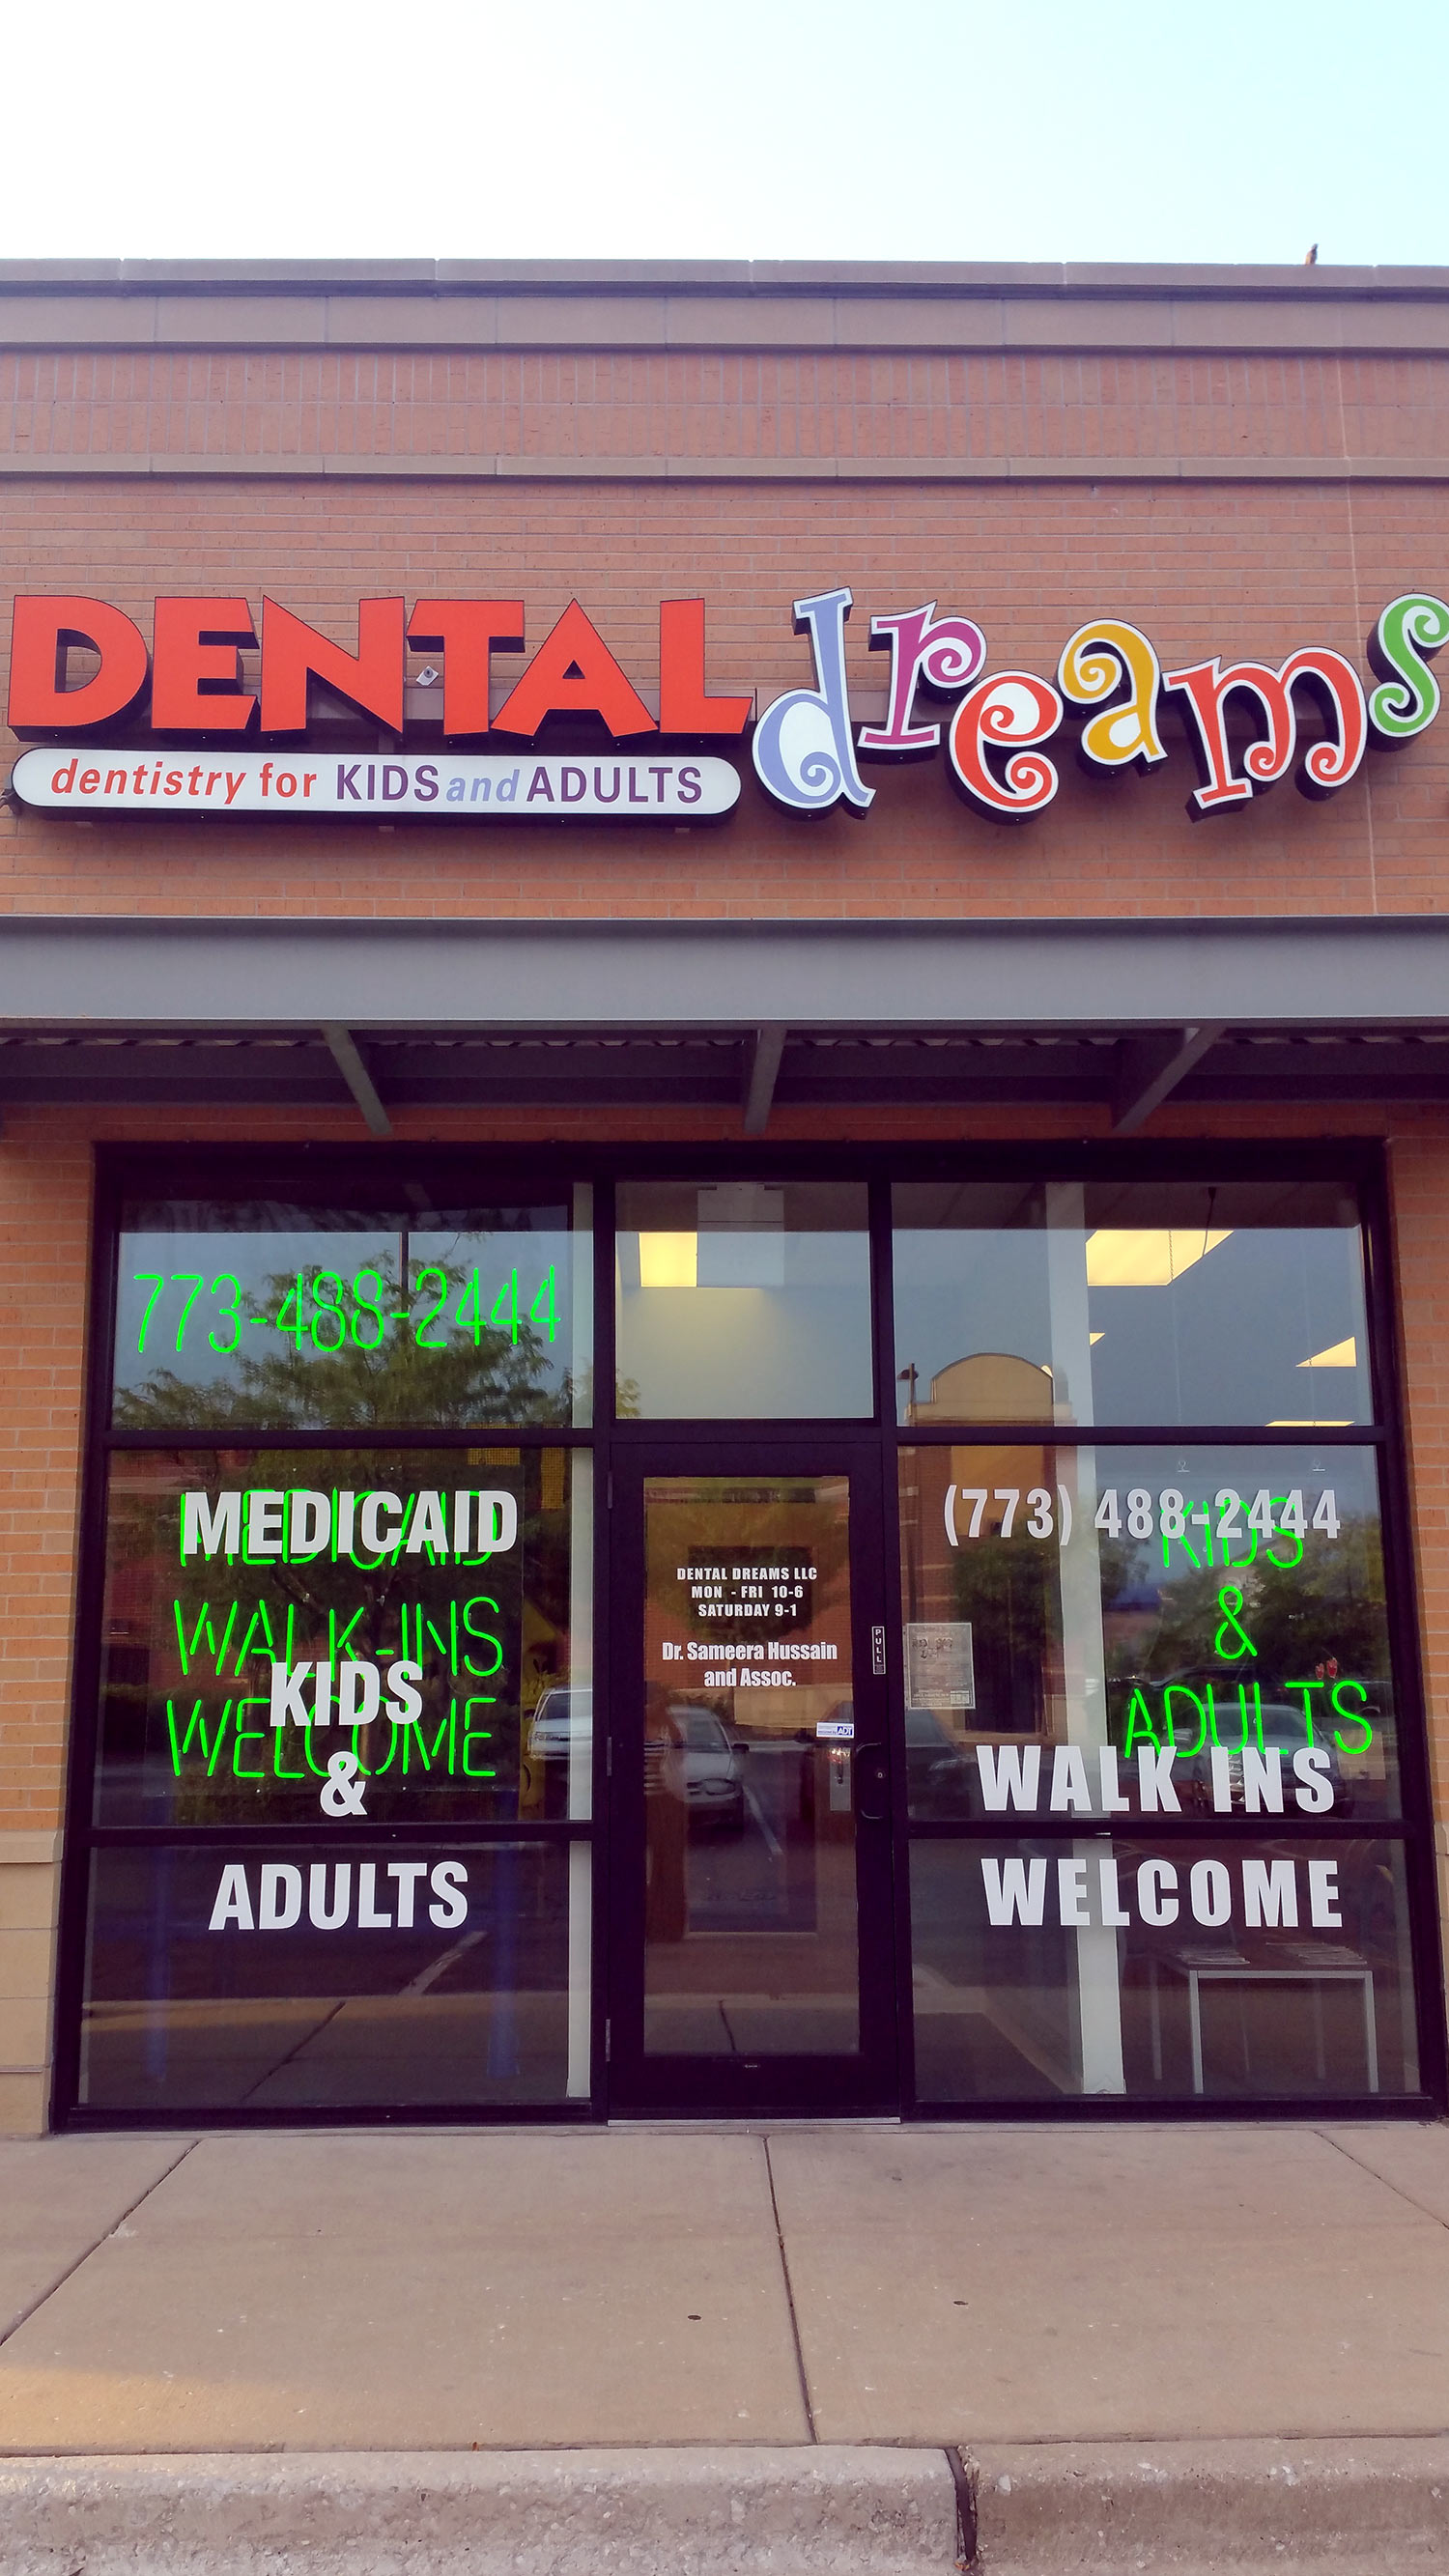 Photo of Dental Dreams - South Holland Road in Chicago, IL 60620